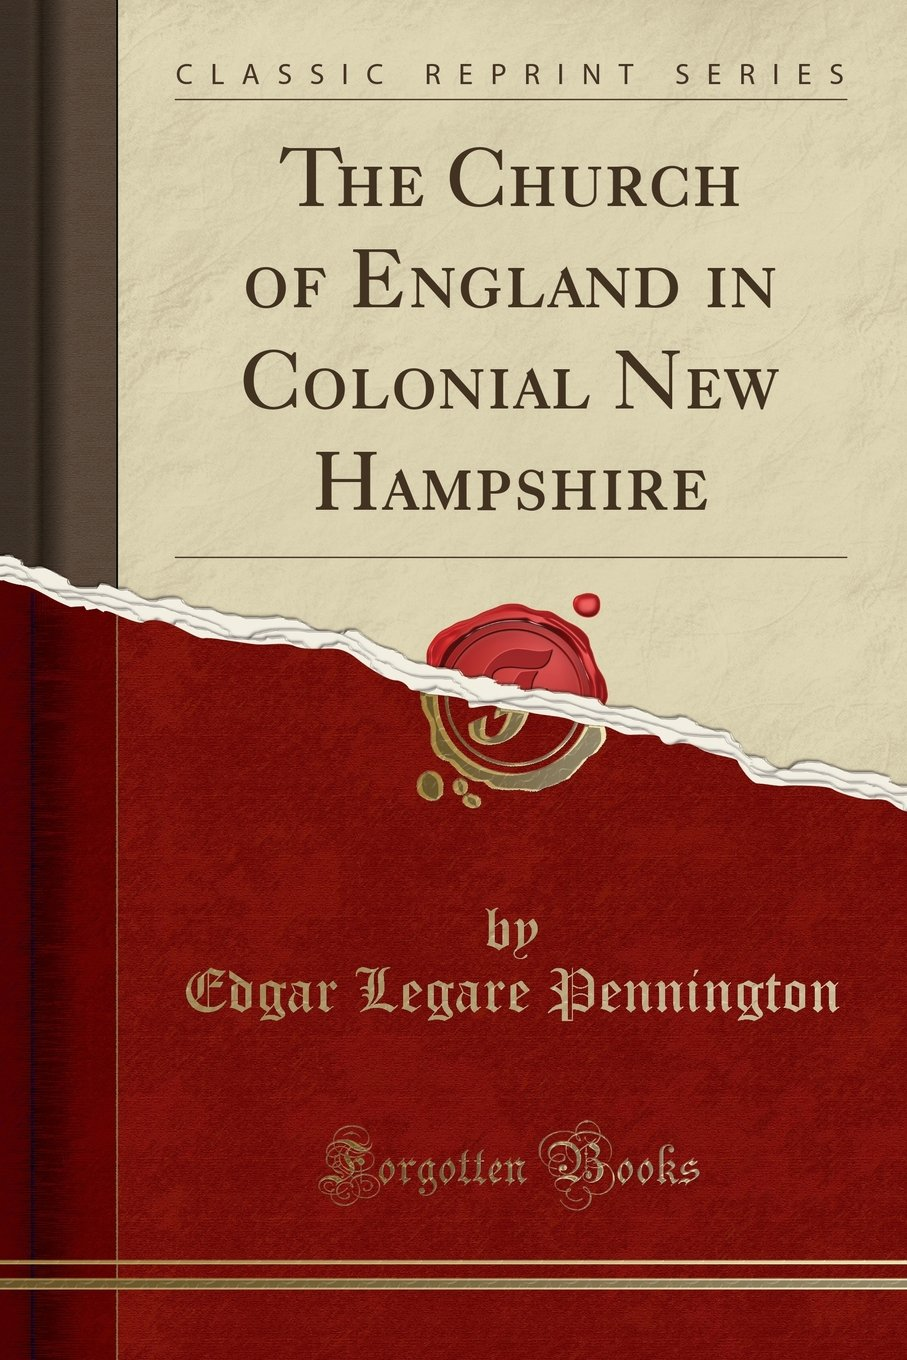 Read Online The Church of England in Colonial New Hampshire (Classic Reprint) PDF ePub fb2 book